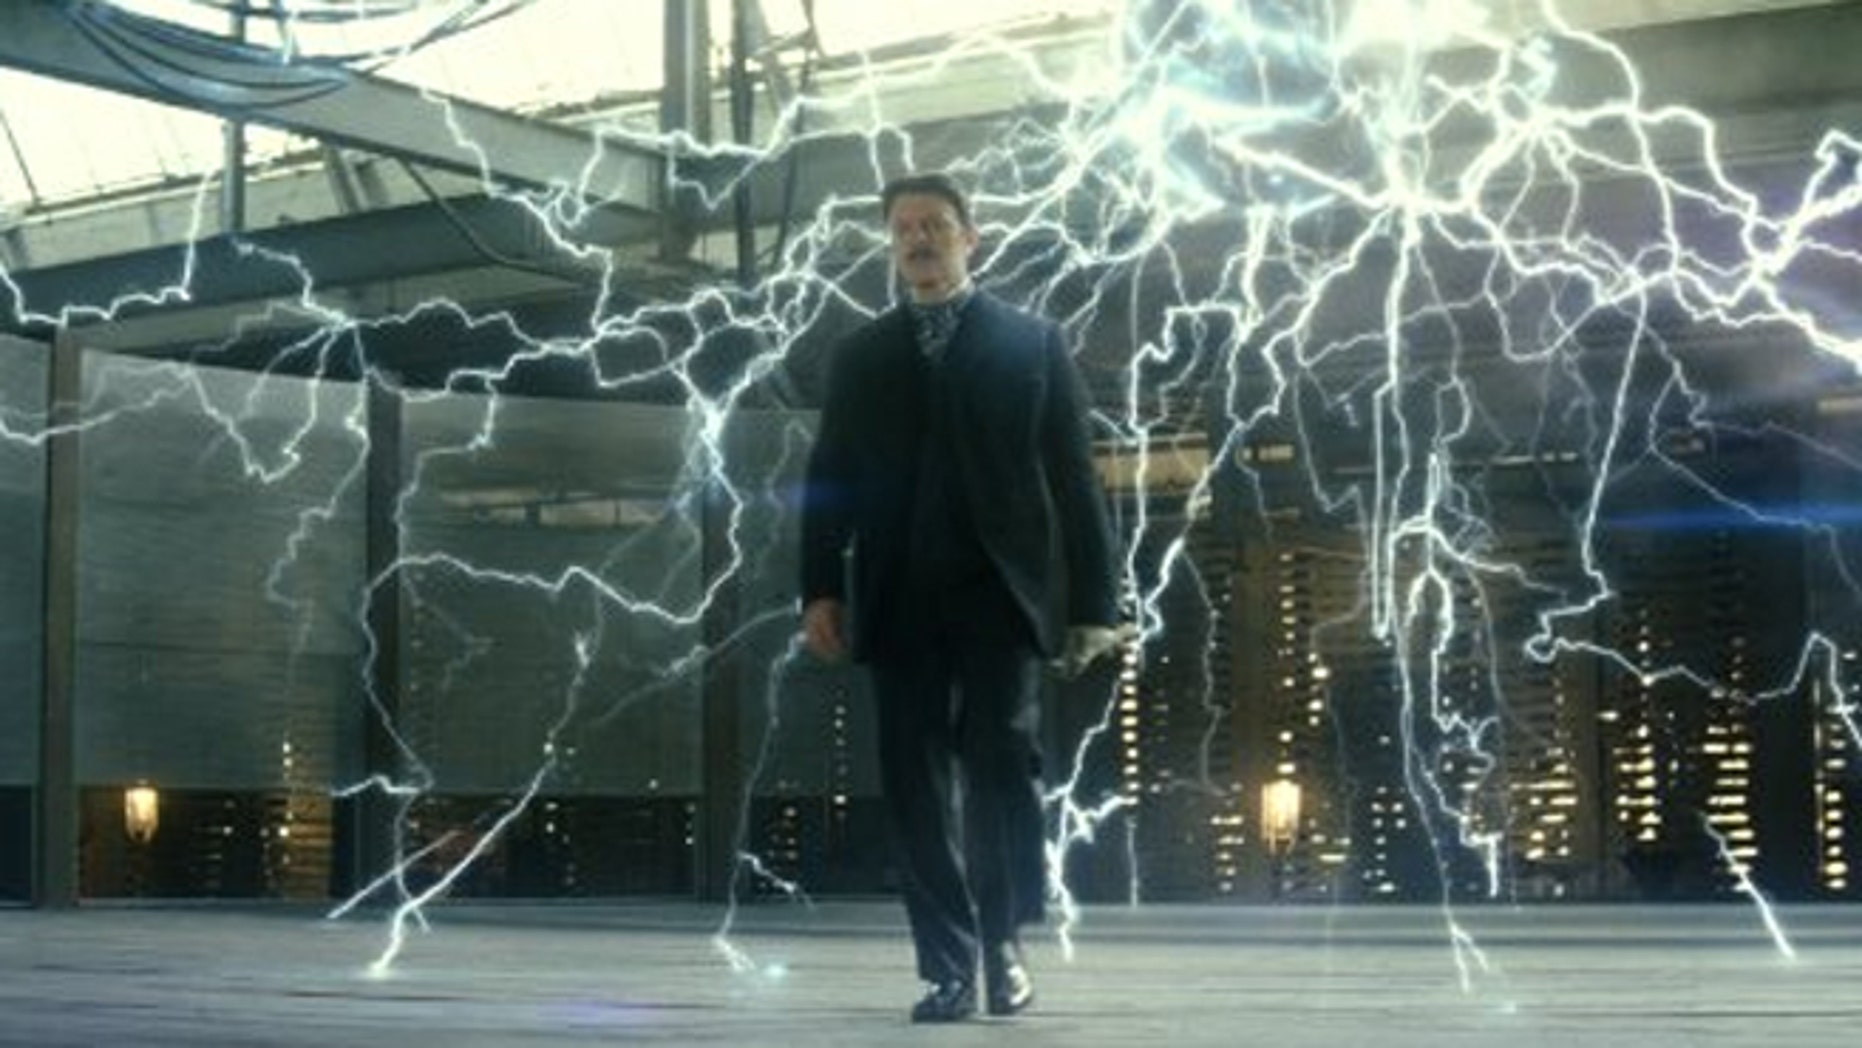 David Bowie as real-life inventor Nikola Tesla in The Prestige where his character created a teleportation device.